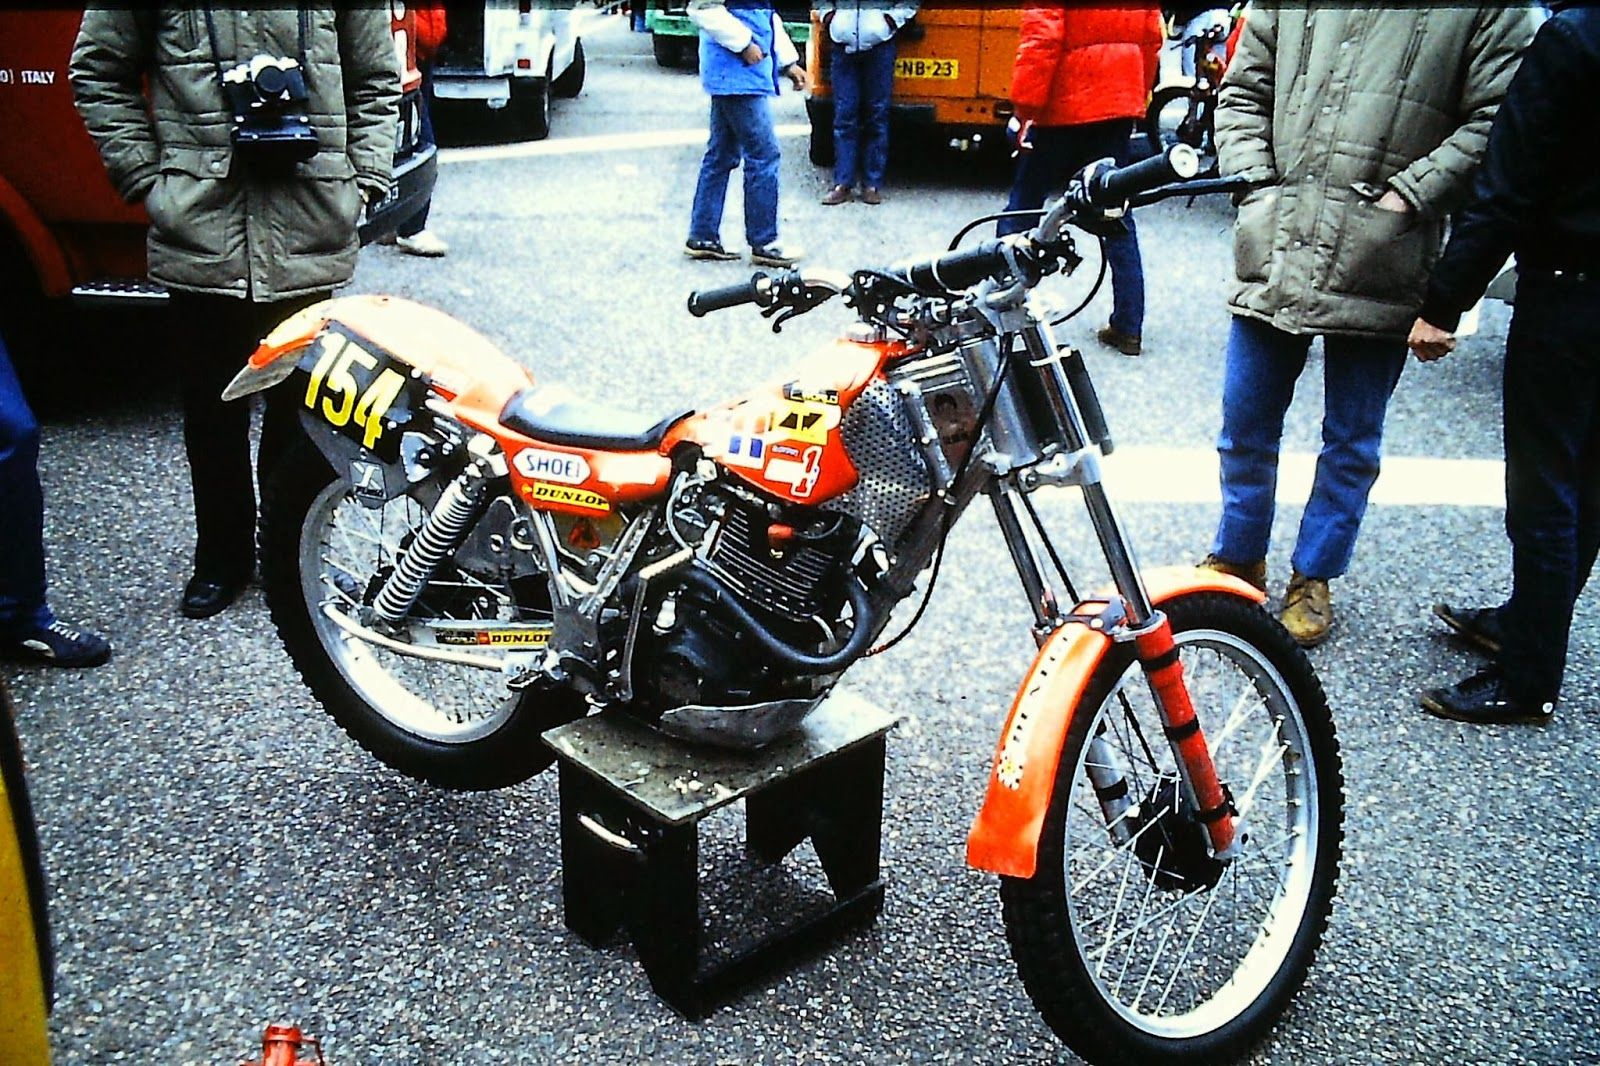 From 1980 To 85 The Honda Trials History Motorcycles Pinterest